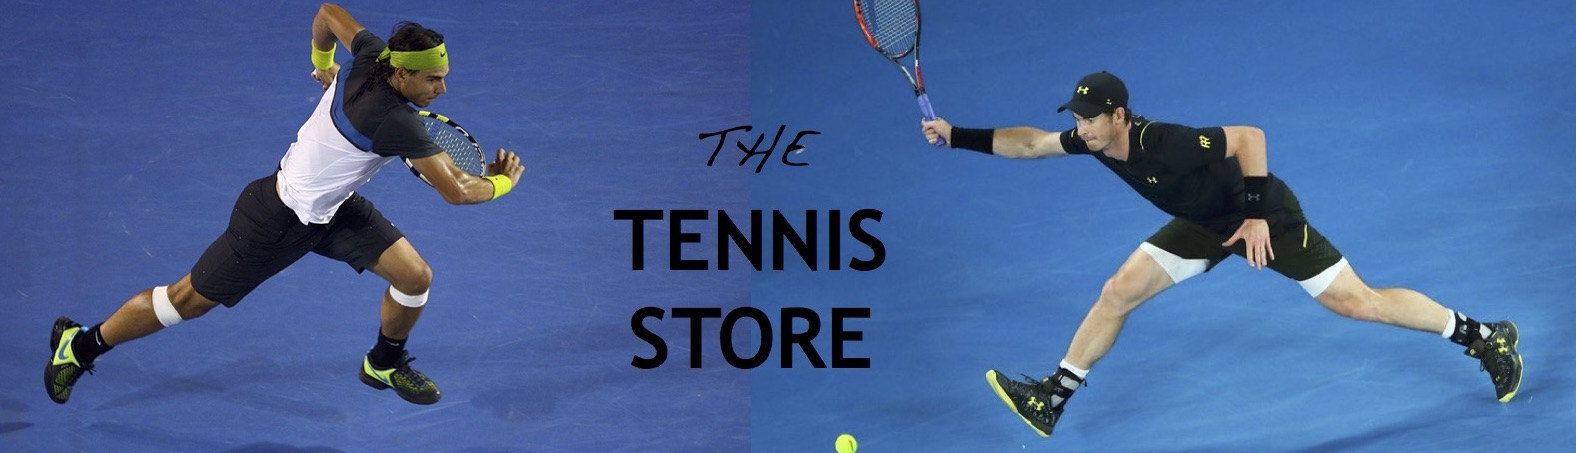 The Tennis Store